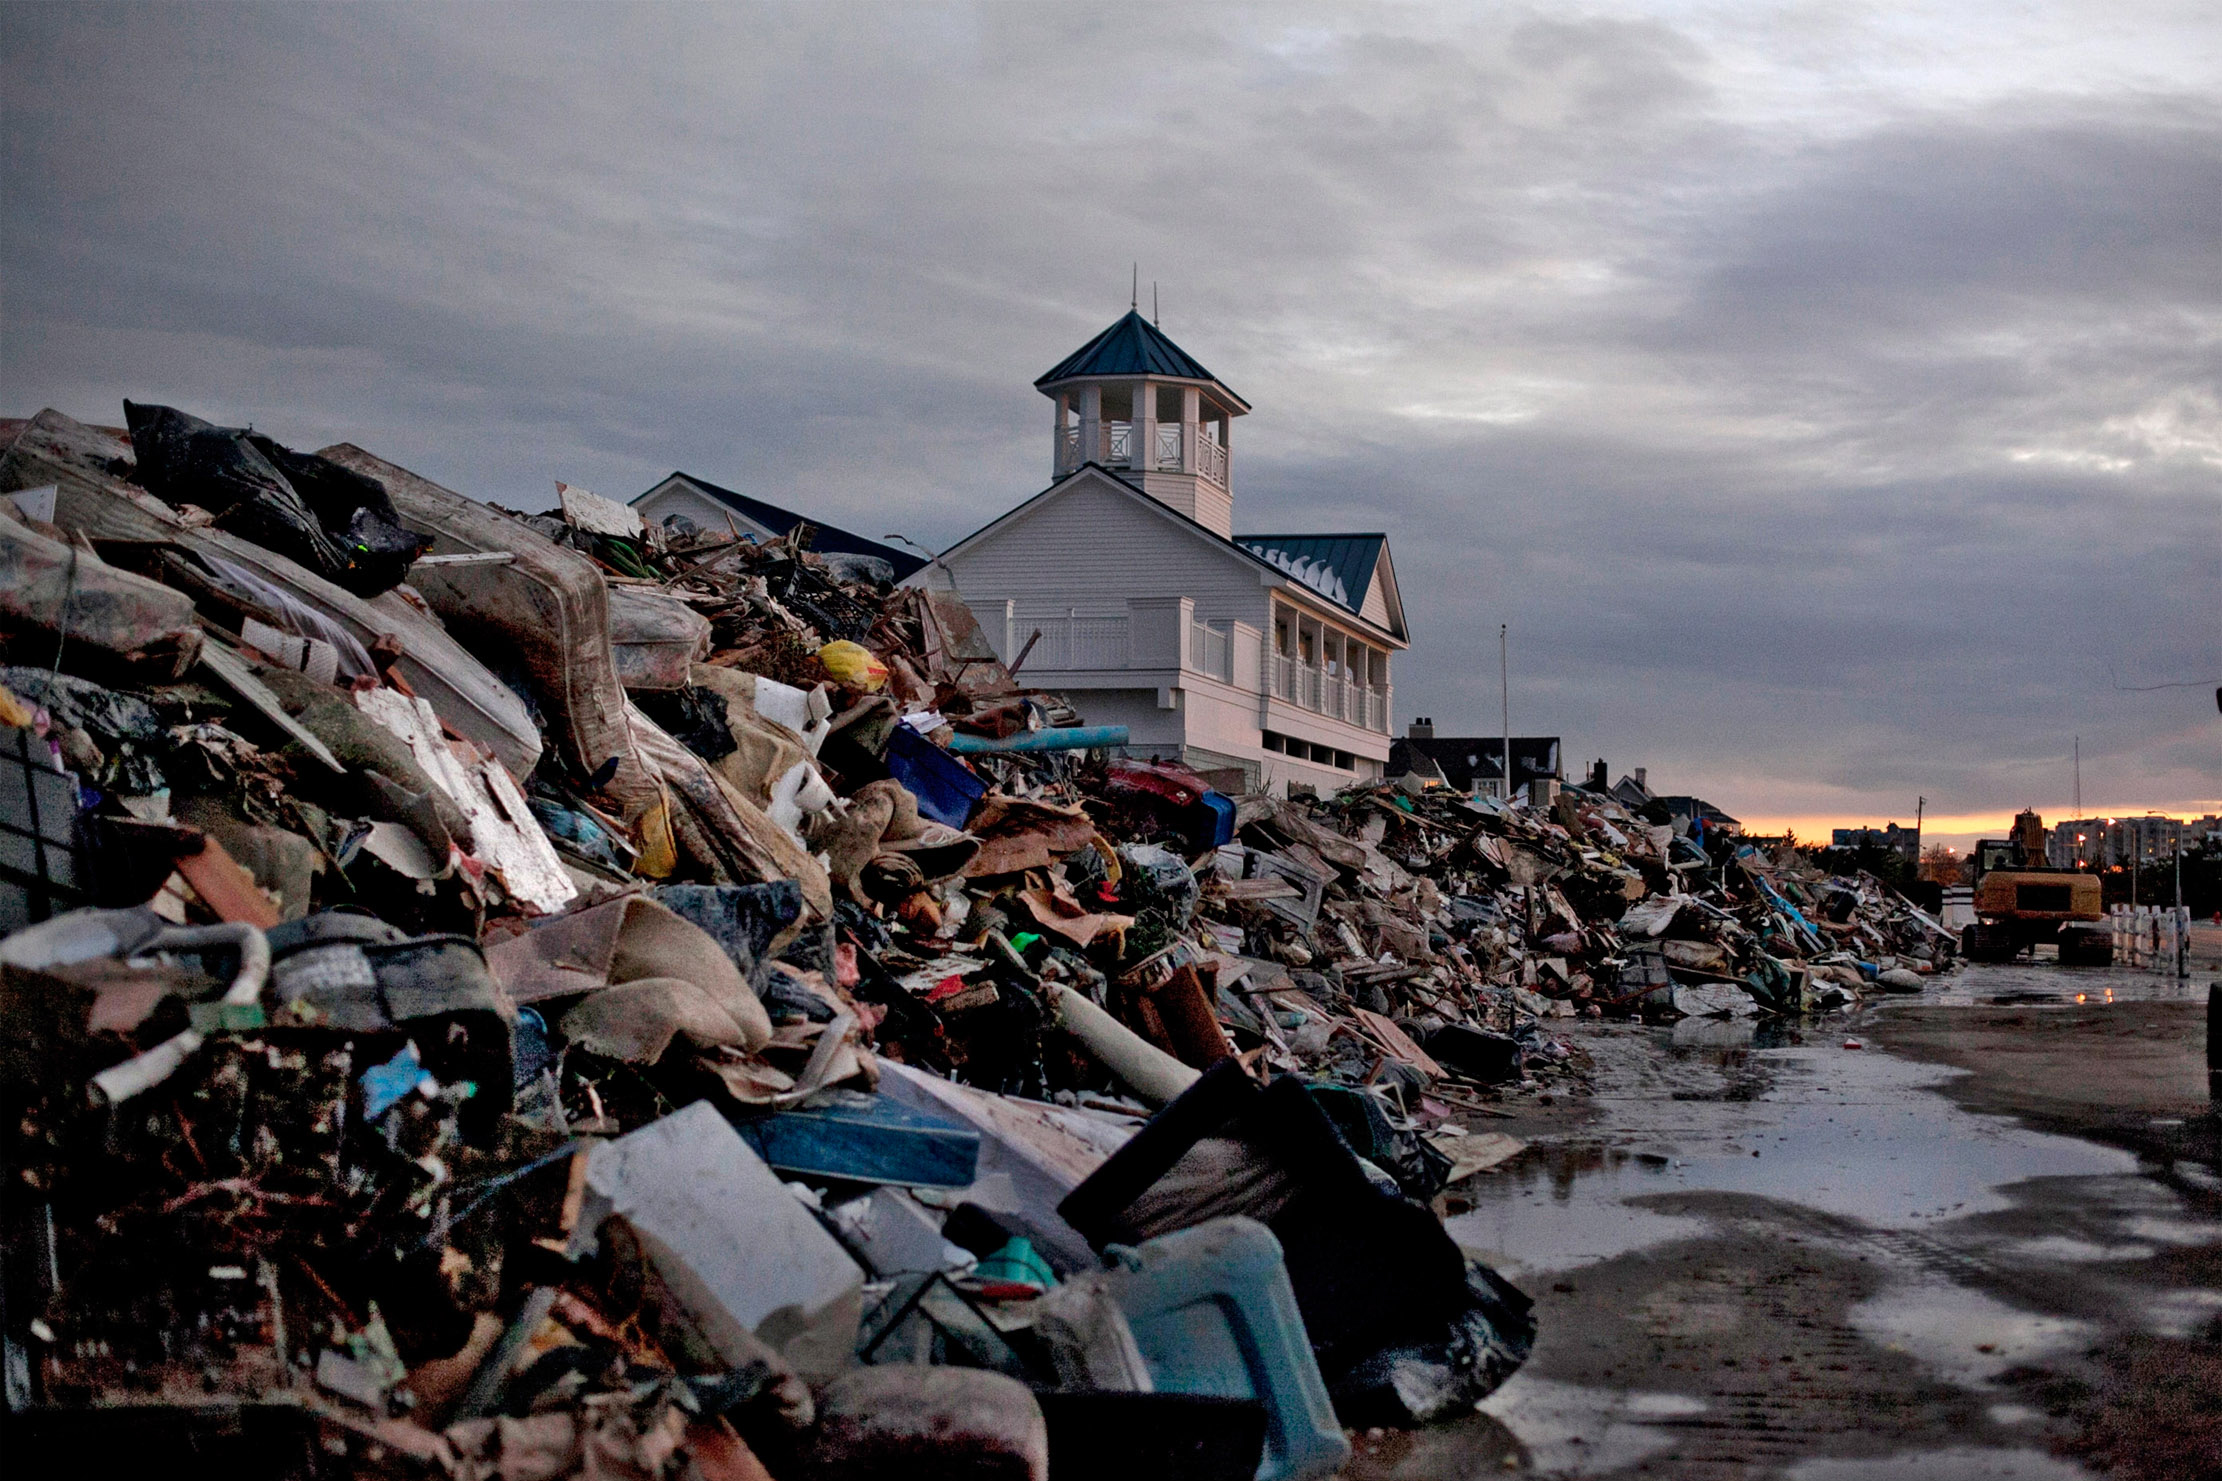 The Monmouth Beach pavilion is surrounded by debris on Nov. 8, 2012, in Monmouth, N.J.